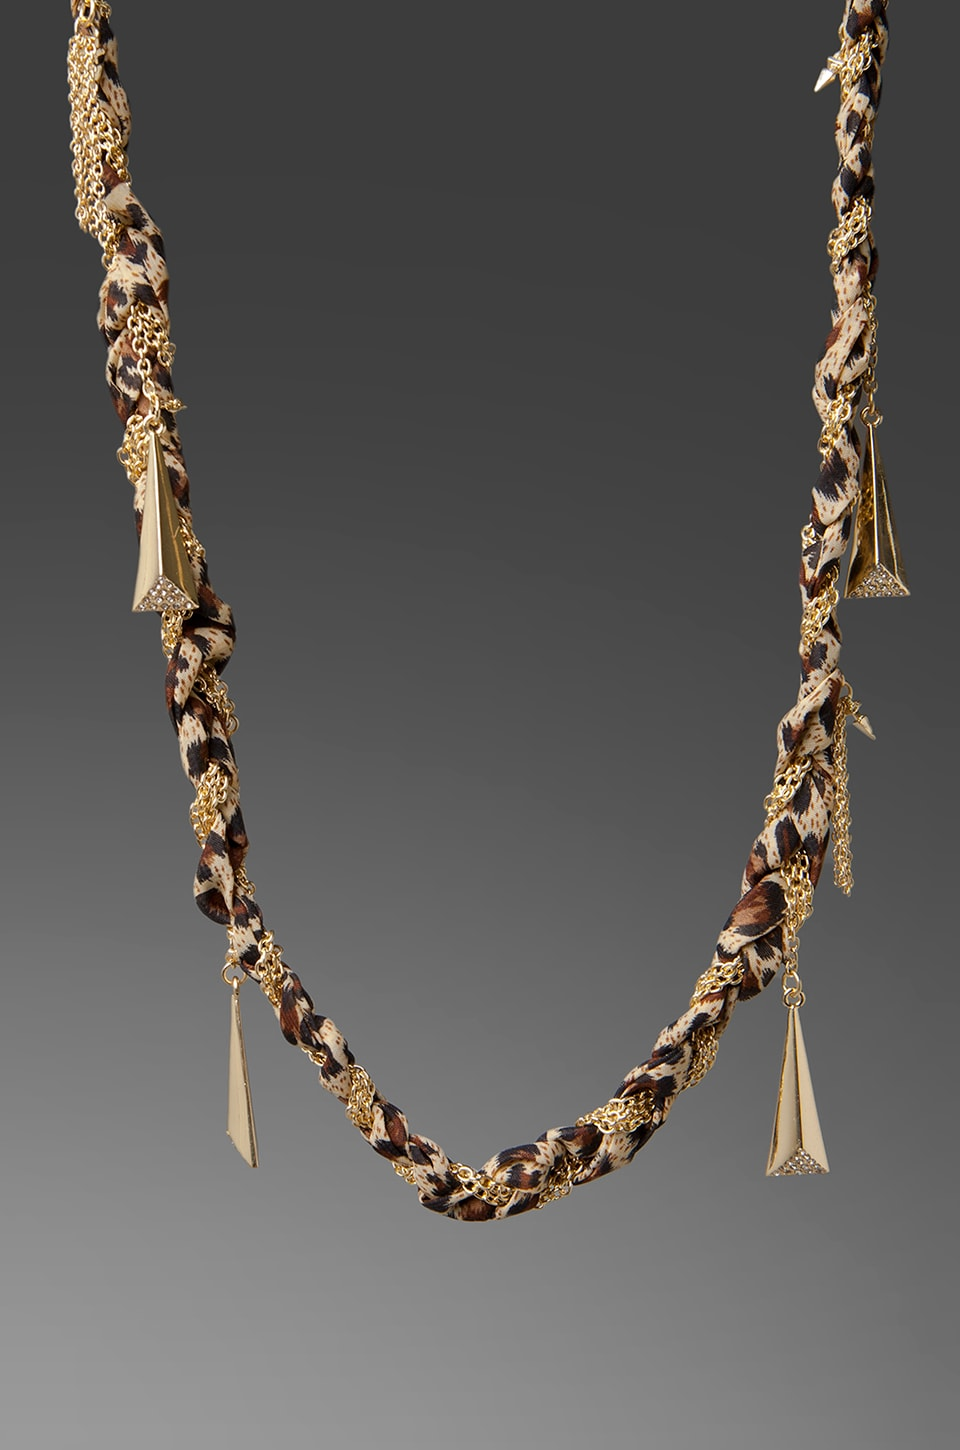 Belle Noel Chiffon Braided Necklace in Leopard